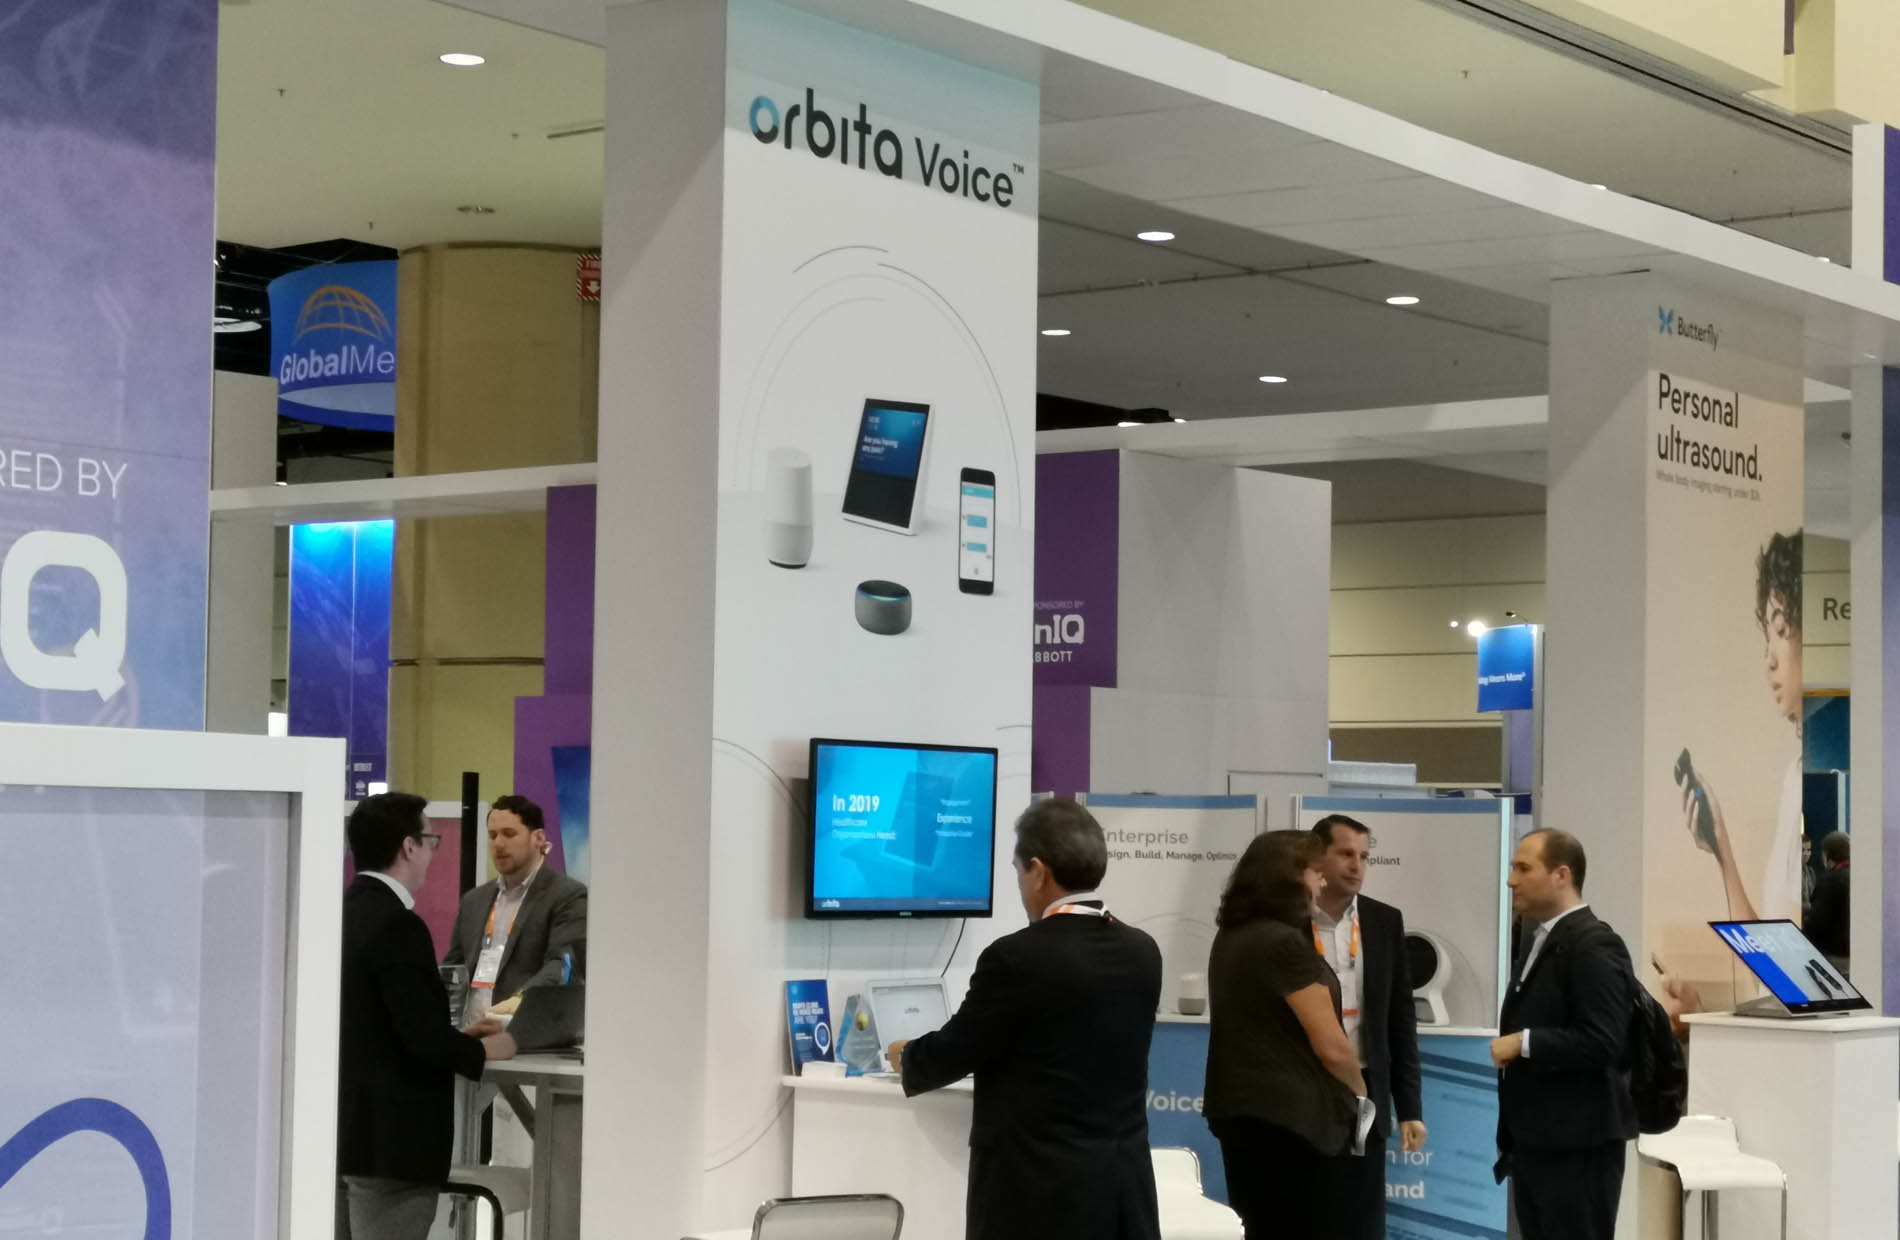 Voice-for-healthcare provider Orbita displays its wares at HIMSS. (Photo: Mike Feibus)